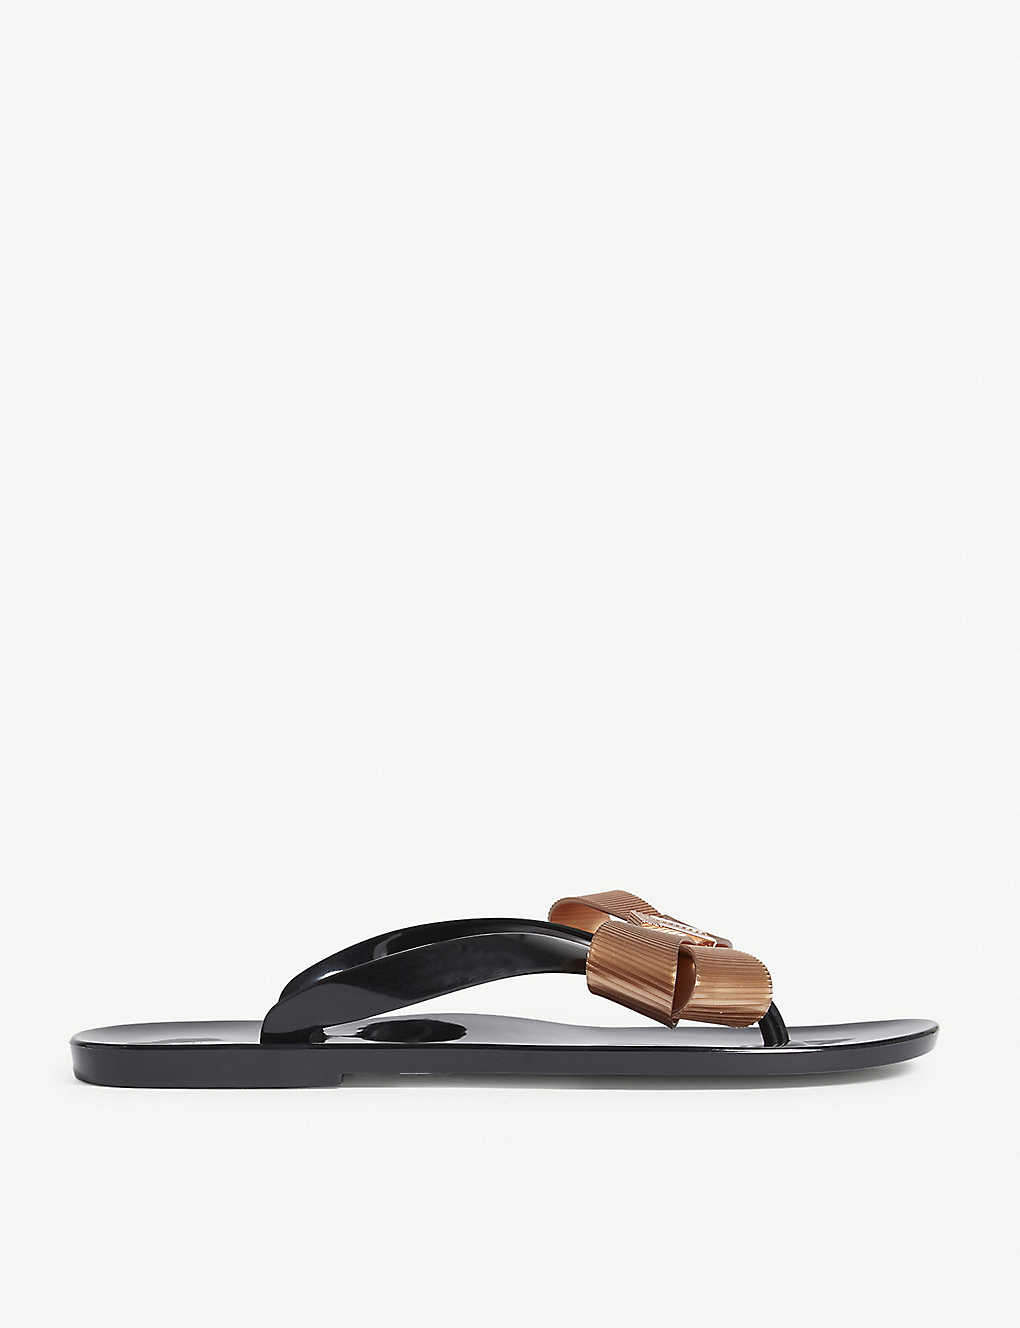 481a500623 TED BAKER - Suszie bow detail jelly sandals | Selfridges.com